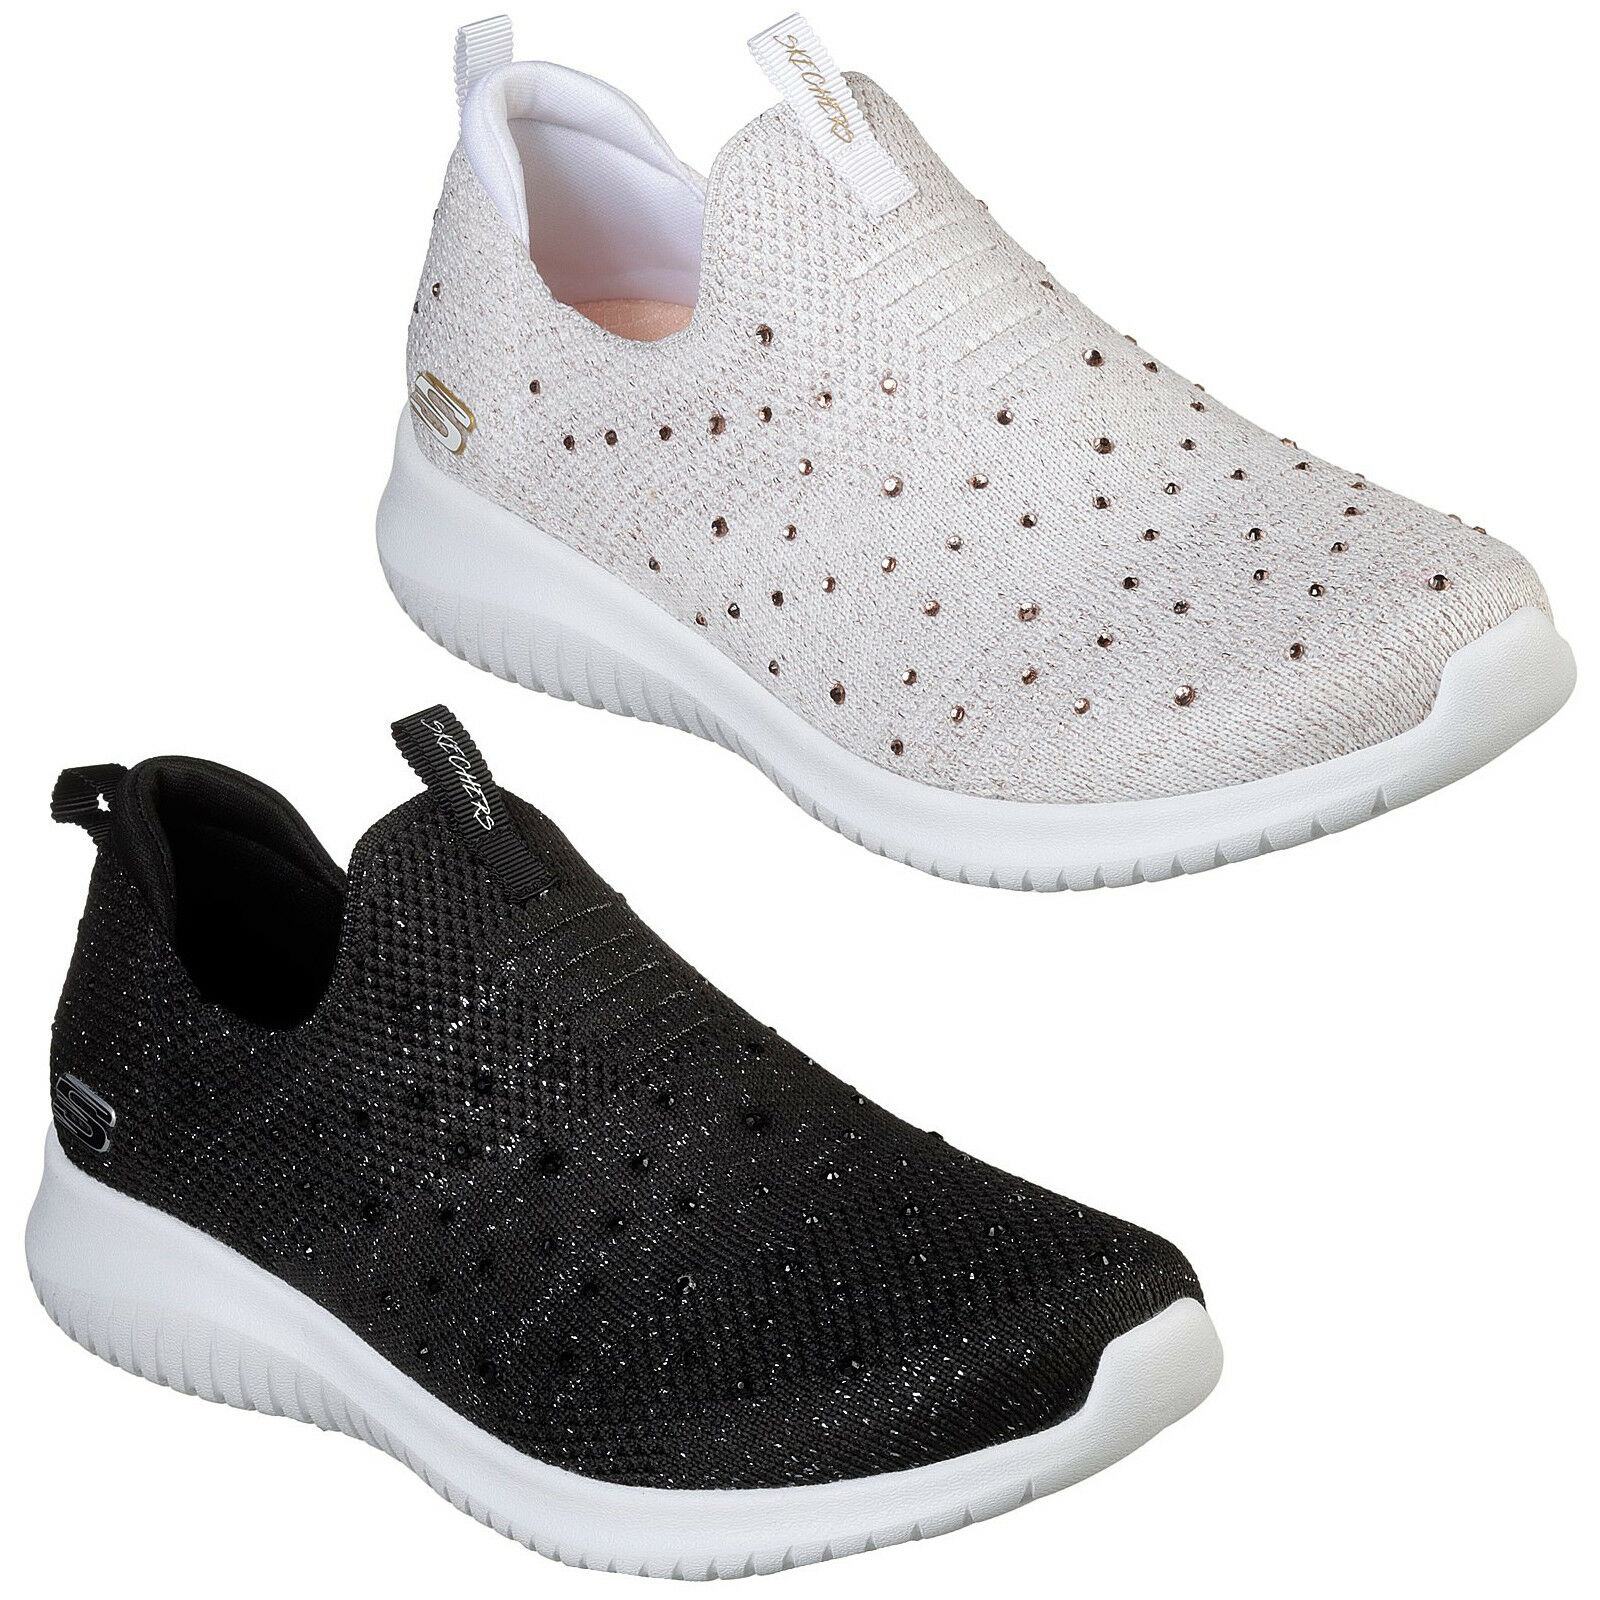 Skechers Ultra Flex - Thrive Up Trainers 13113 Womens Jewel Sparkle Mesh shoes